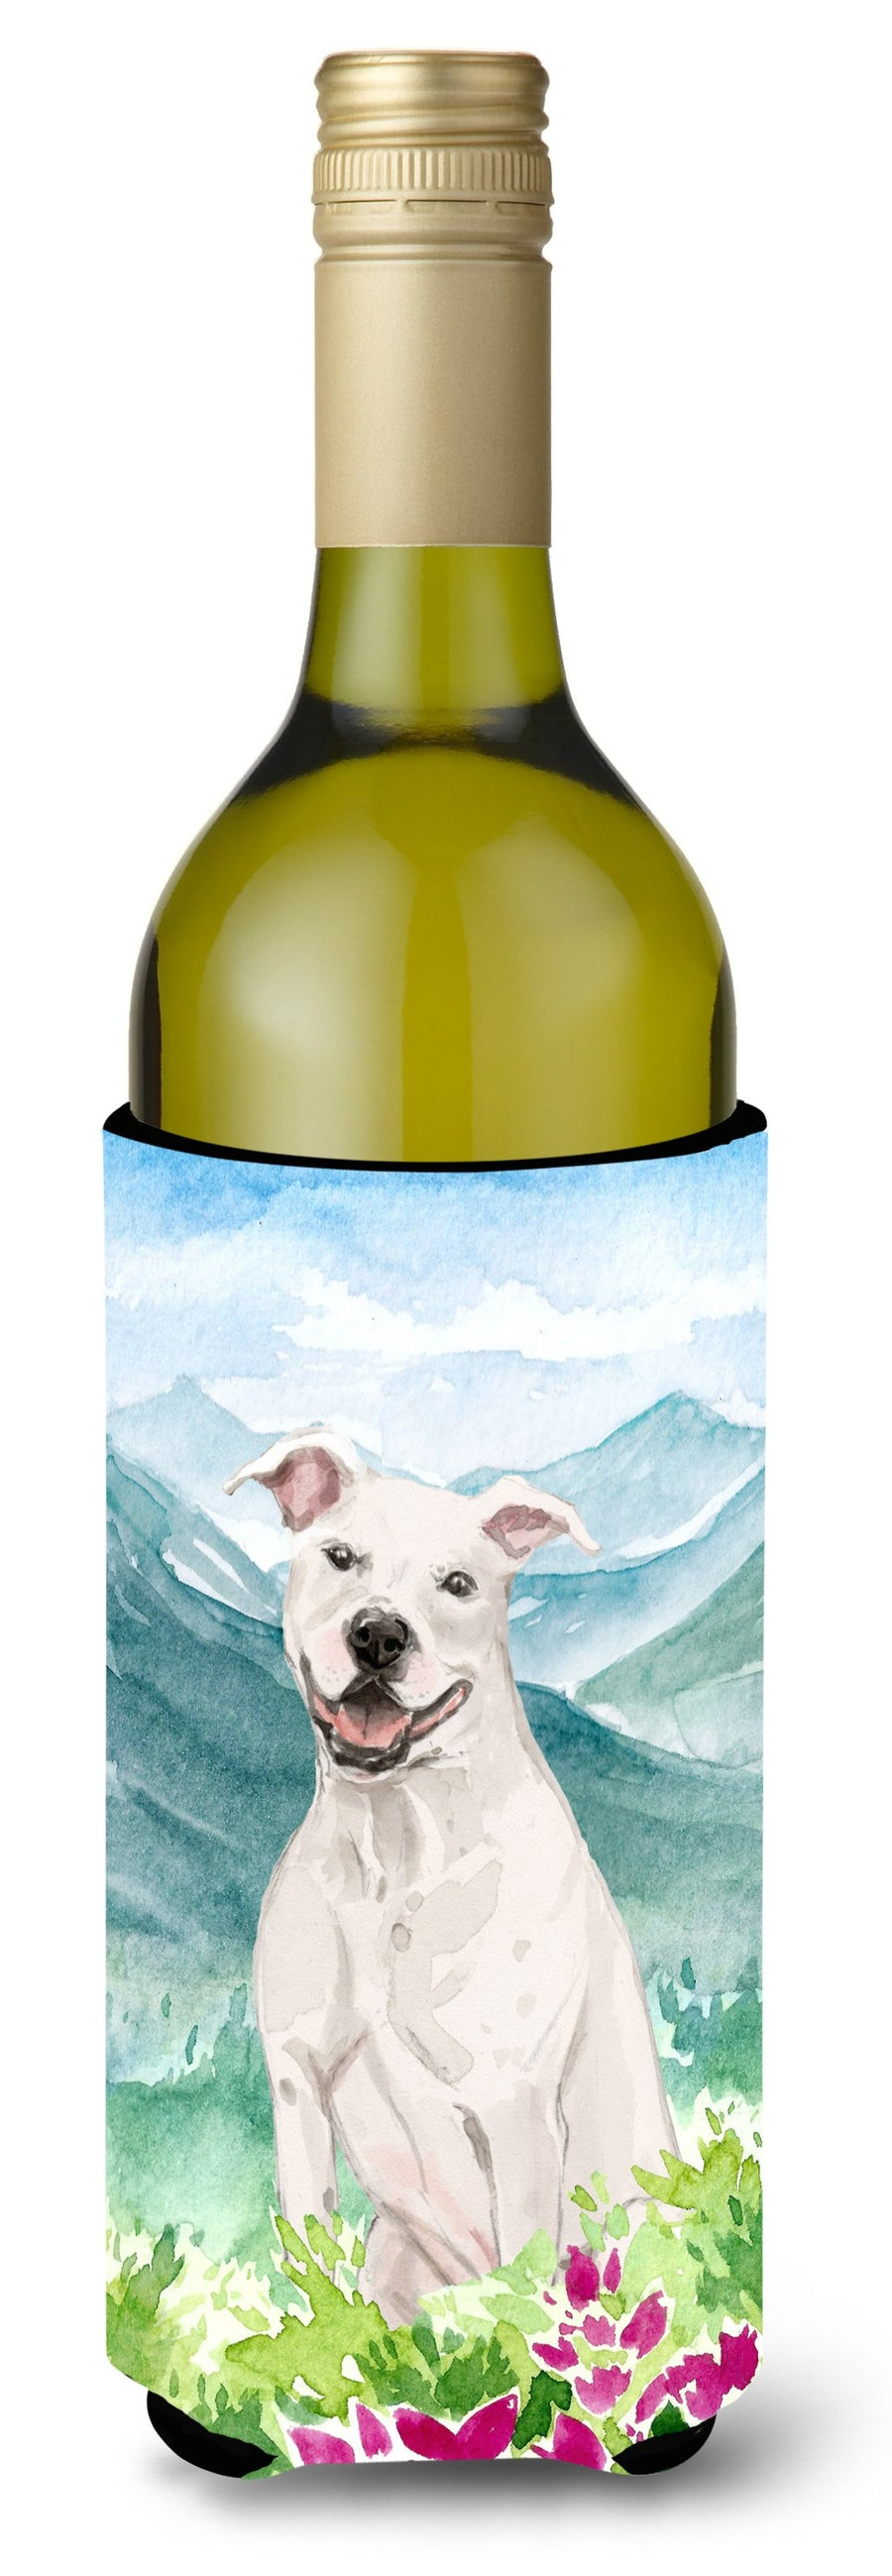 Buy this Mountian Flowers White Staffie Bull Terrier Wine Bottle Beverage Insulator Hugger CK1996LITERK